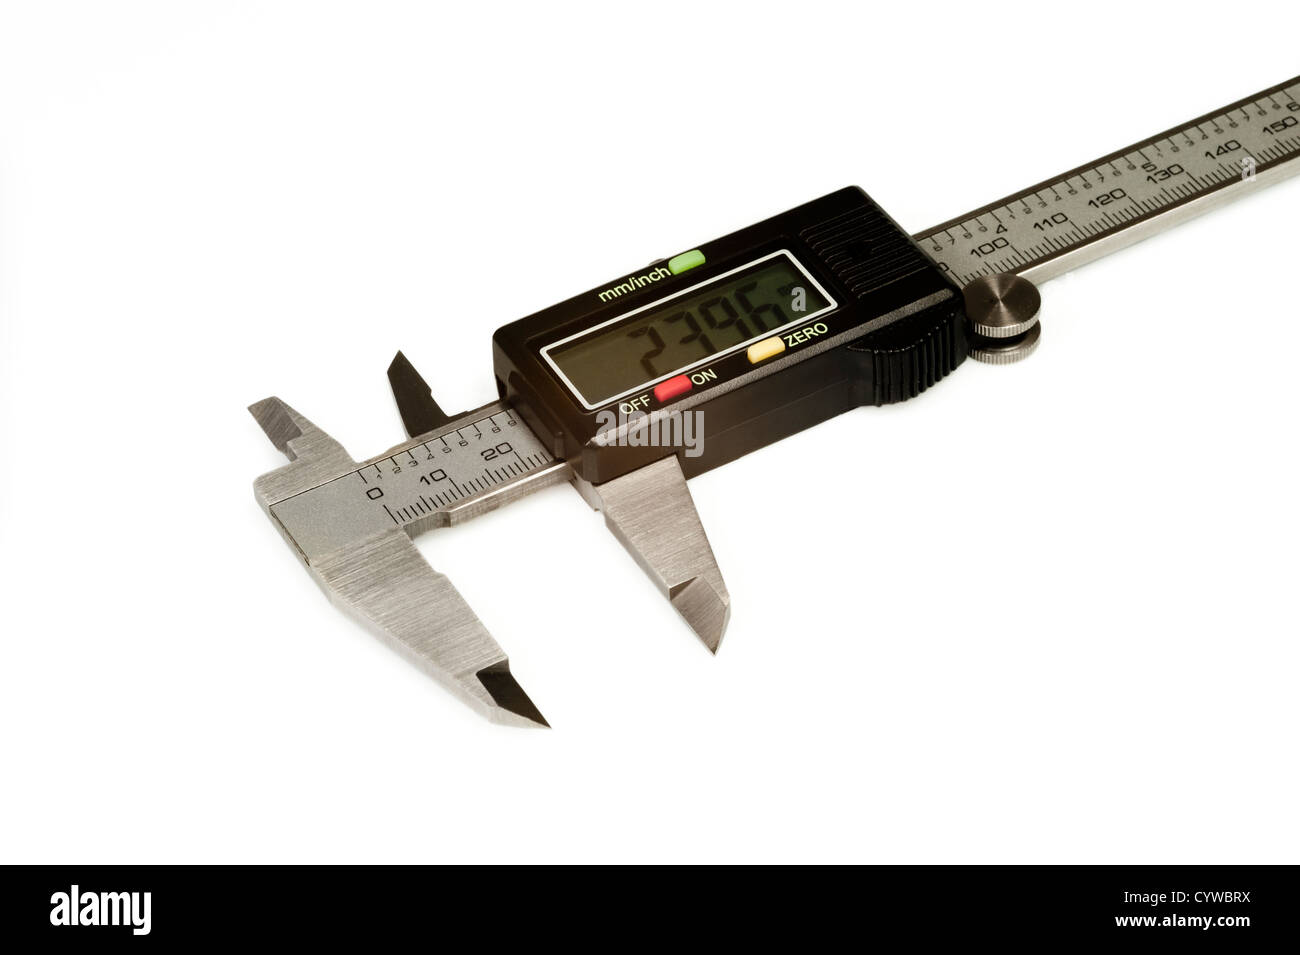 Isolated digital calipers on the white background - Stock Image